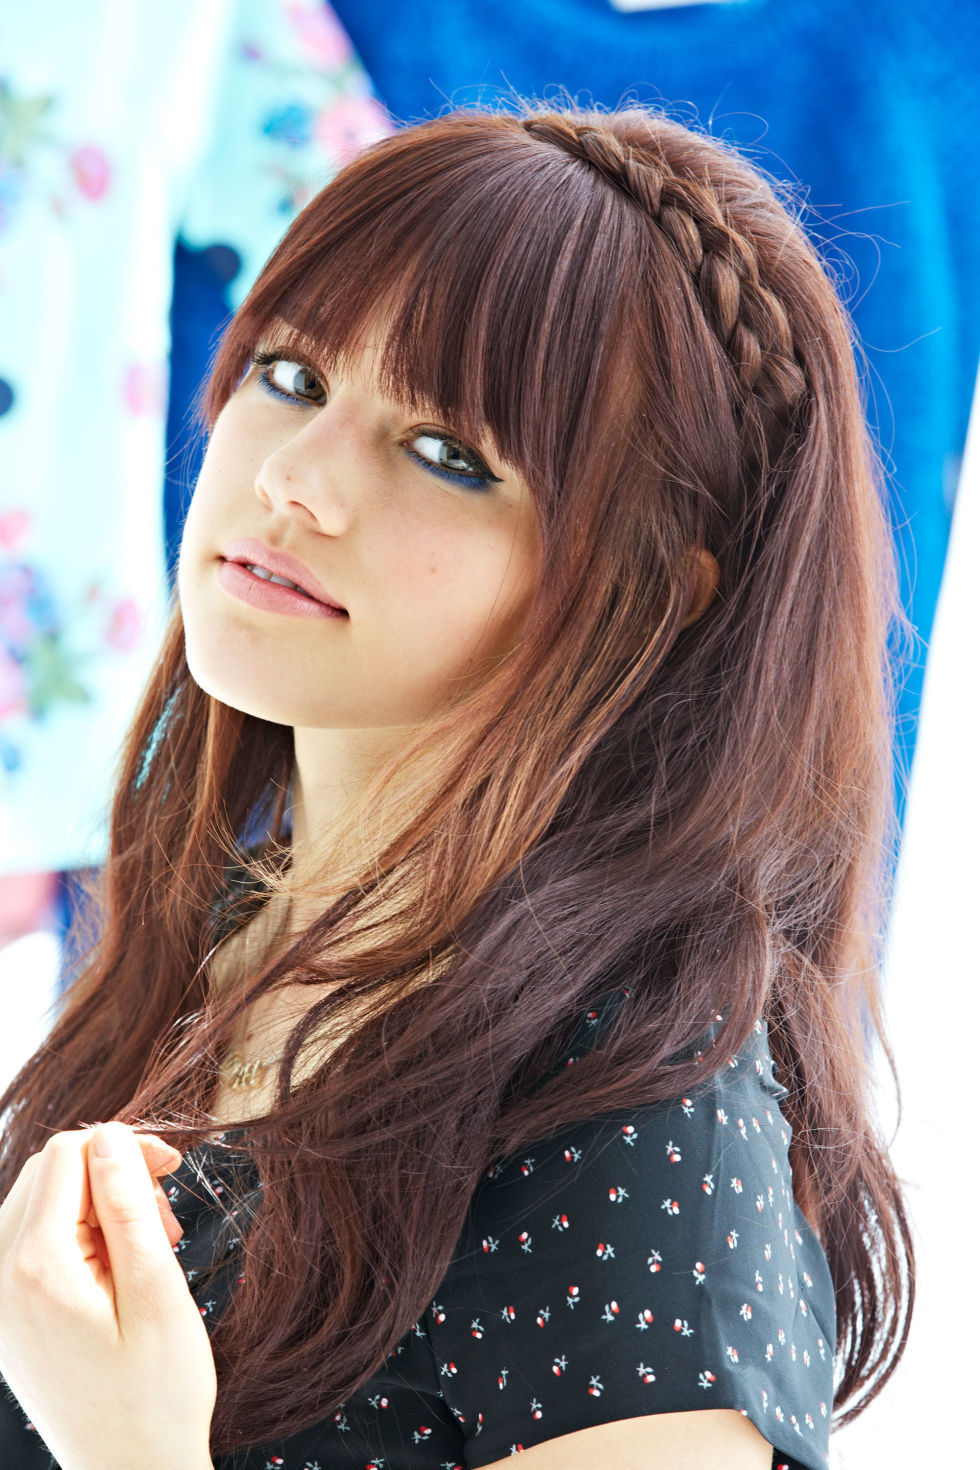 Miraculous 7 Hairstyles With Bangs In 2016 How To Style Bangs Short Hairstyles For Black Women Fulllsitofus